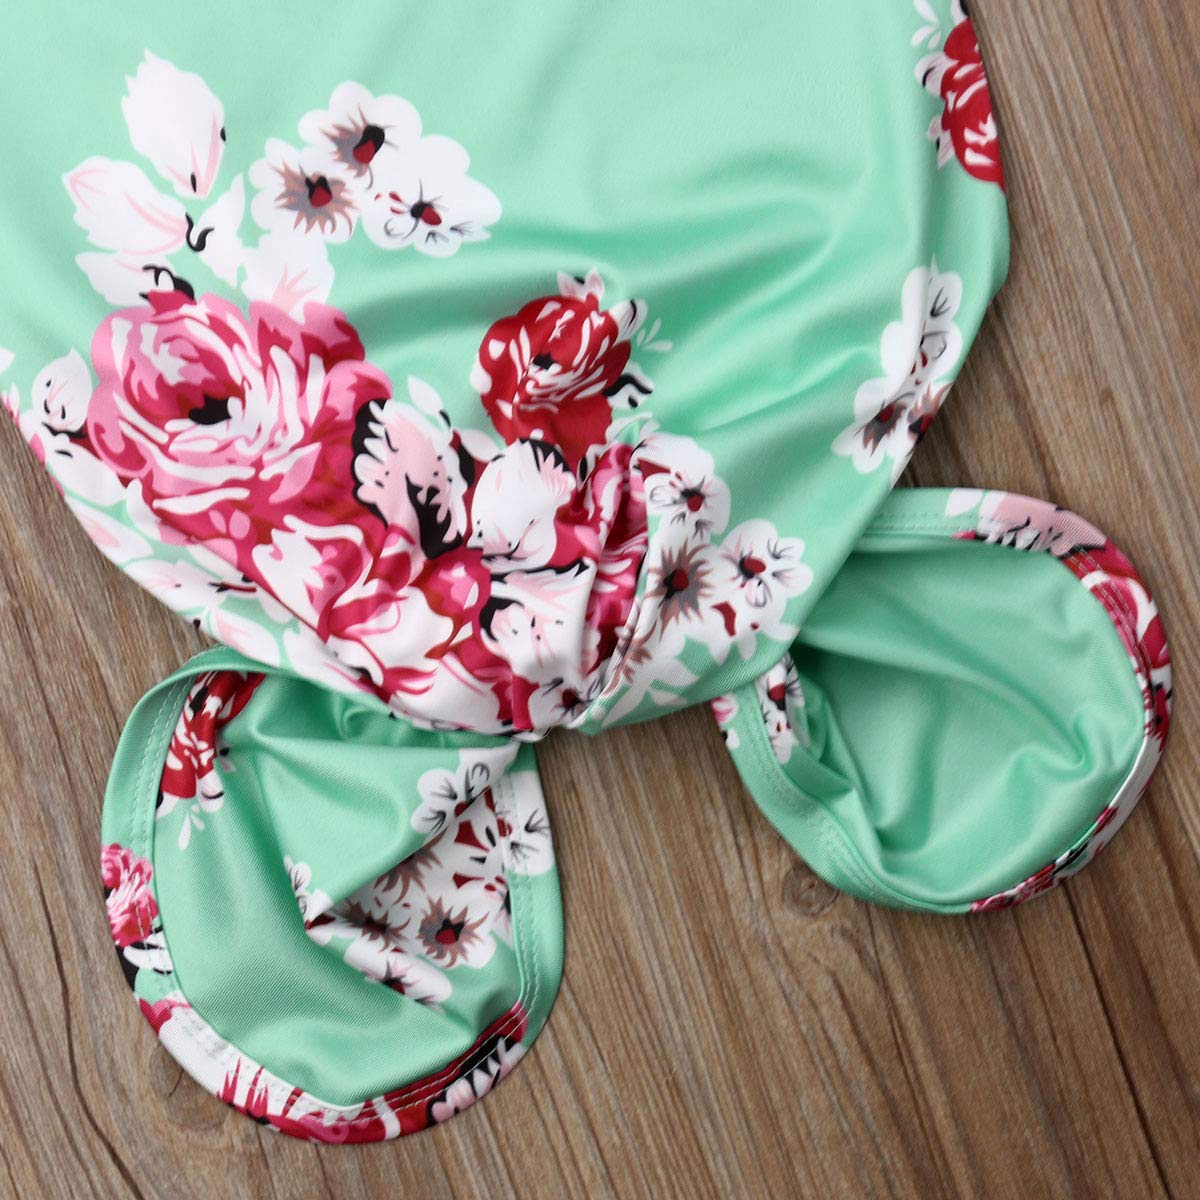 Newborn Baby Girls Sleepy Floral Print Mermaid Tail Gown Headband Outfit Kids Sleepwear Romper Sleeping Bags